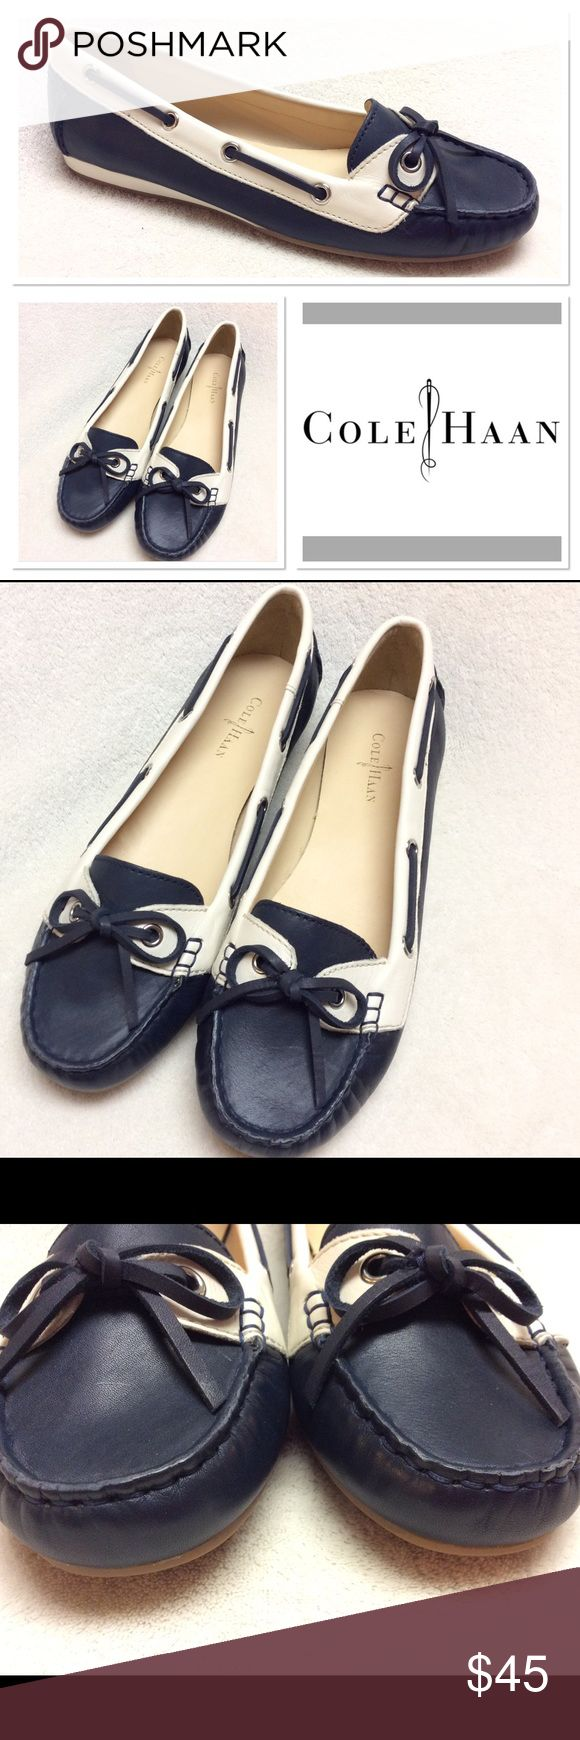 8.5B COLE HAAN navy & white boat shoes Never worn leather loafers/boat shoes by Cole Haan. Bow on toe, navy with white trim. Have been stored out of the box. Excellent condition! Cole Haan Shoes Flats & Loafers